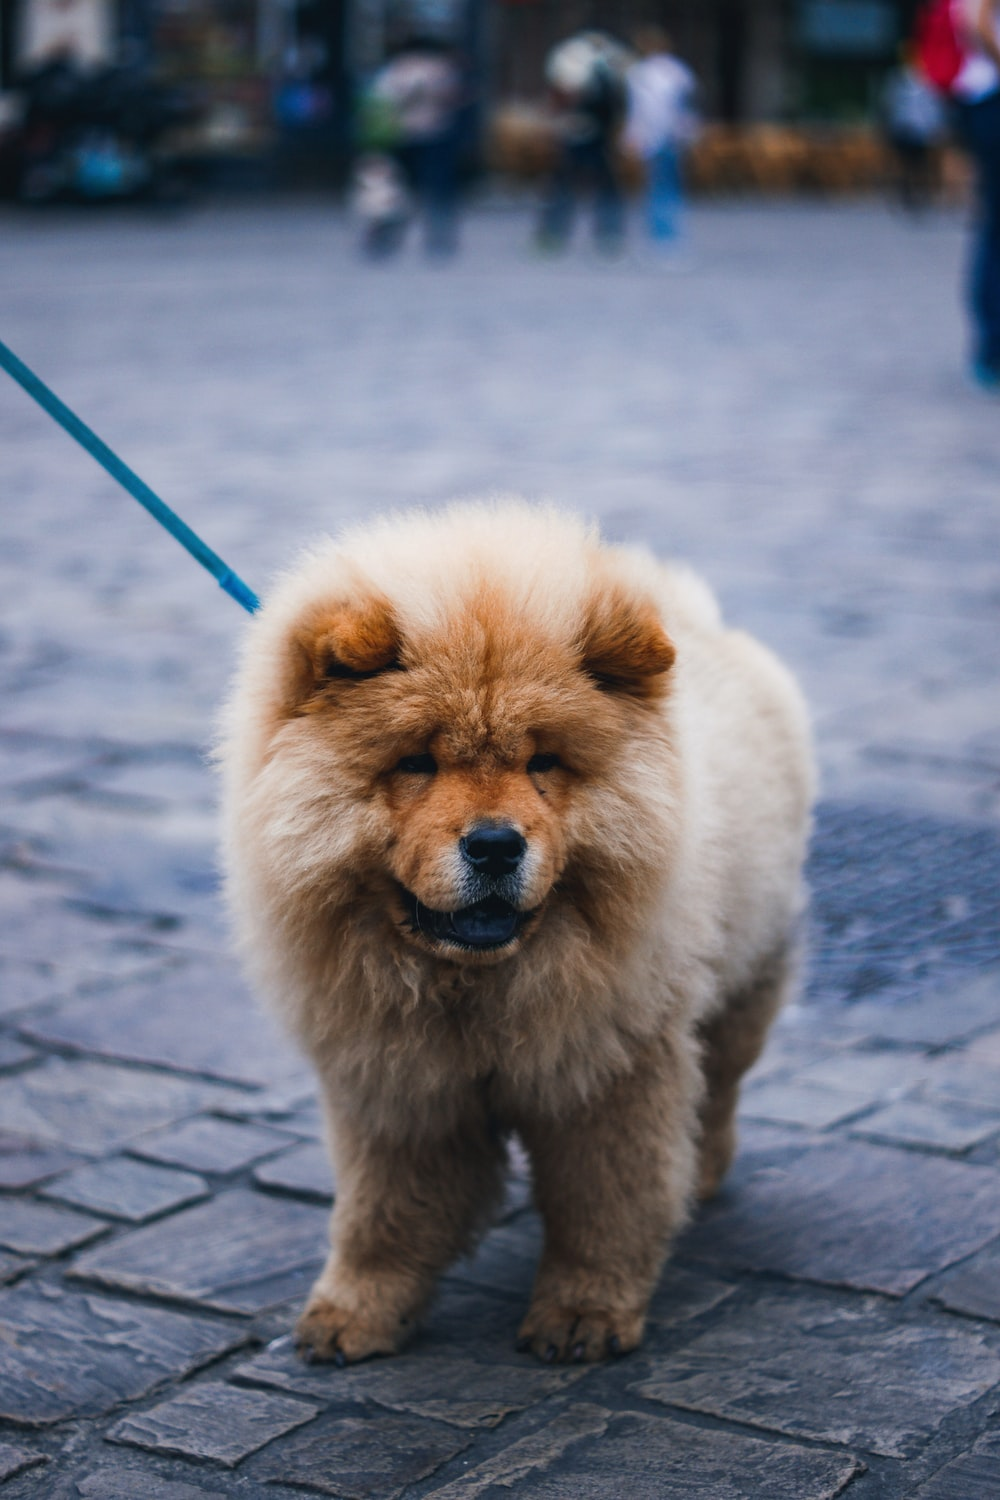 closeup photo of chowchow standing on pavement